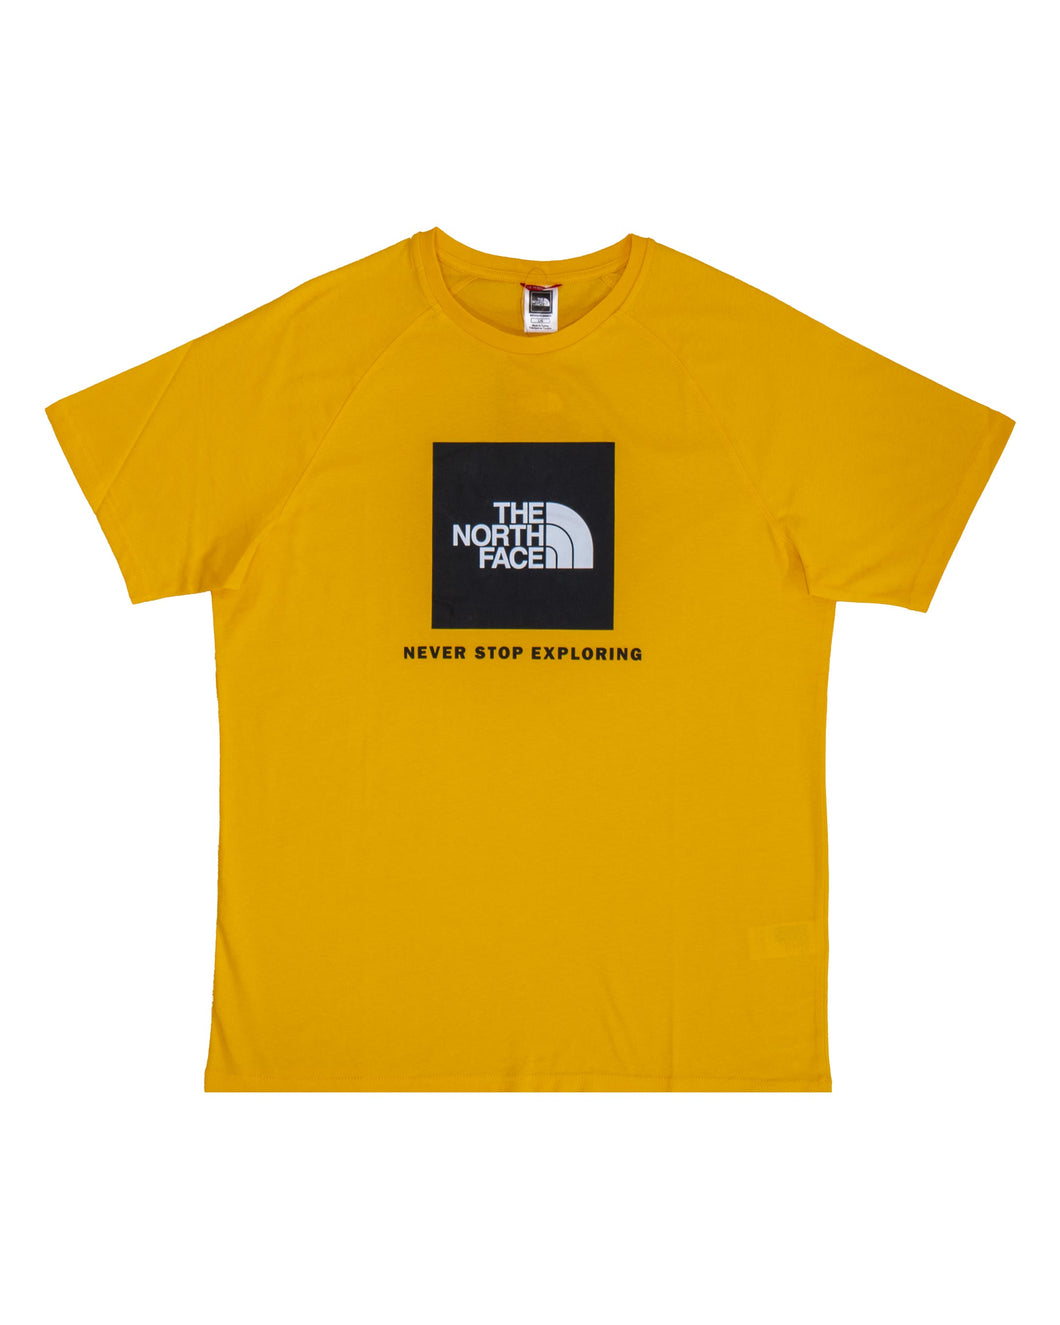 The North Face Rag Red Box T Shirt Summit Gold